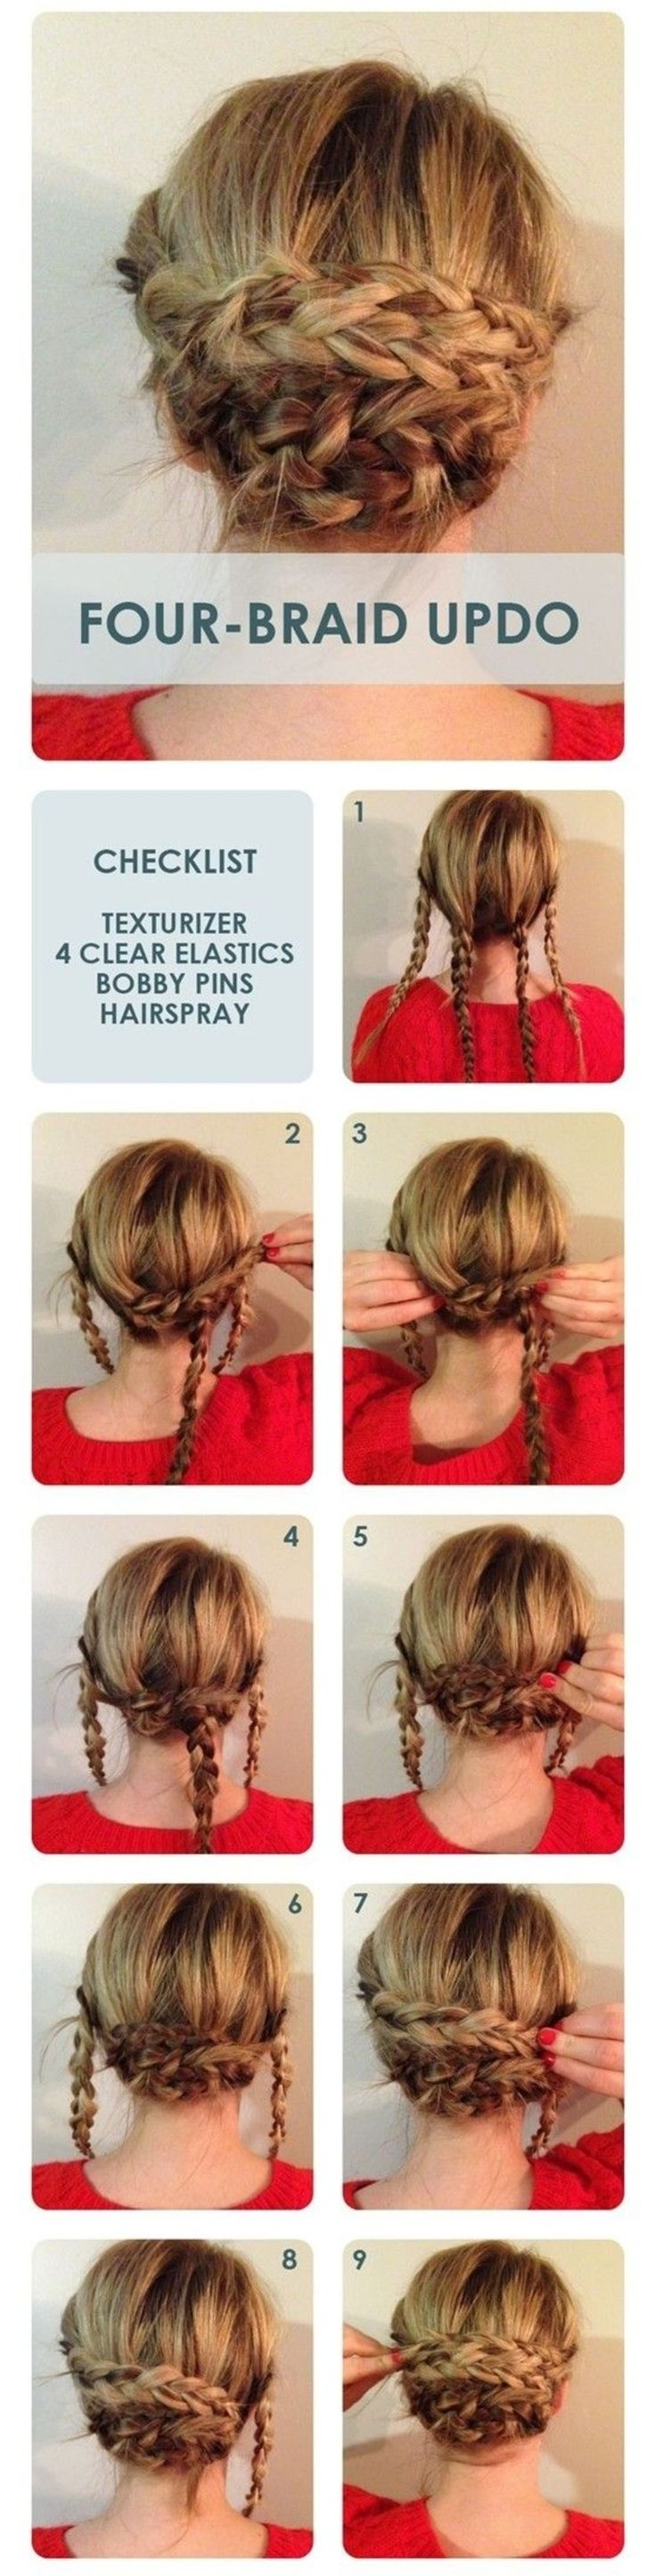 43 #Fancy Braided #Hairstyle Ideas from #Pinterest ...